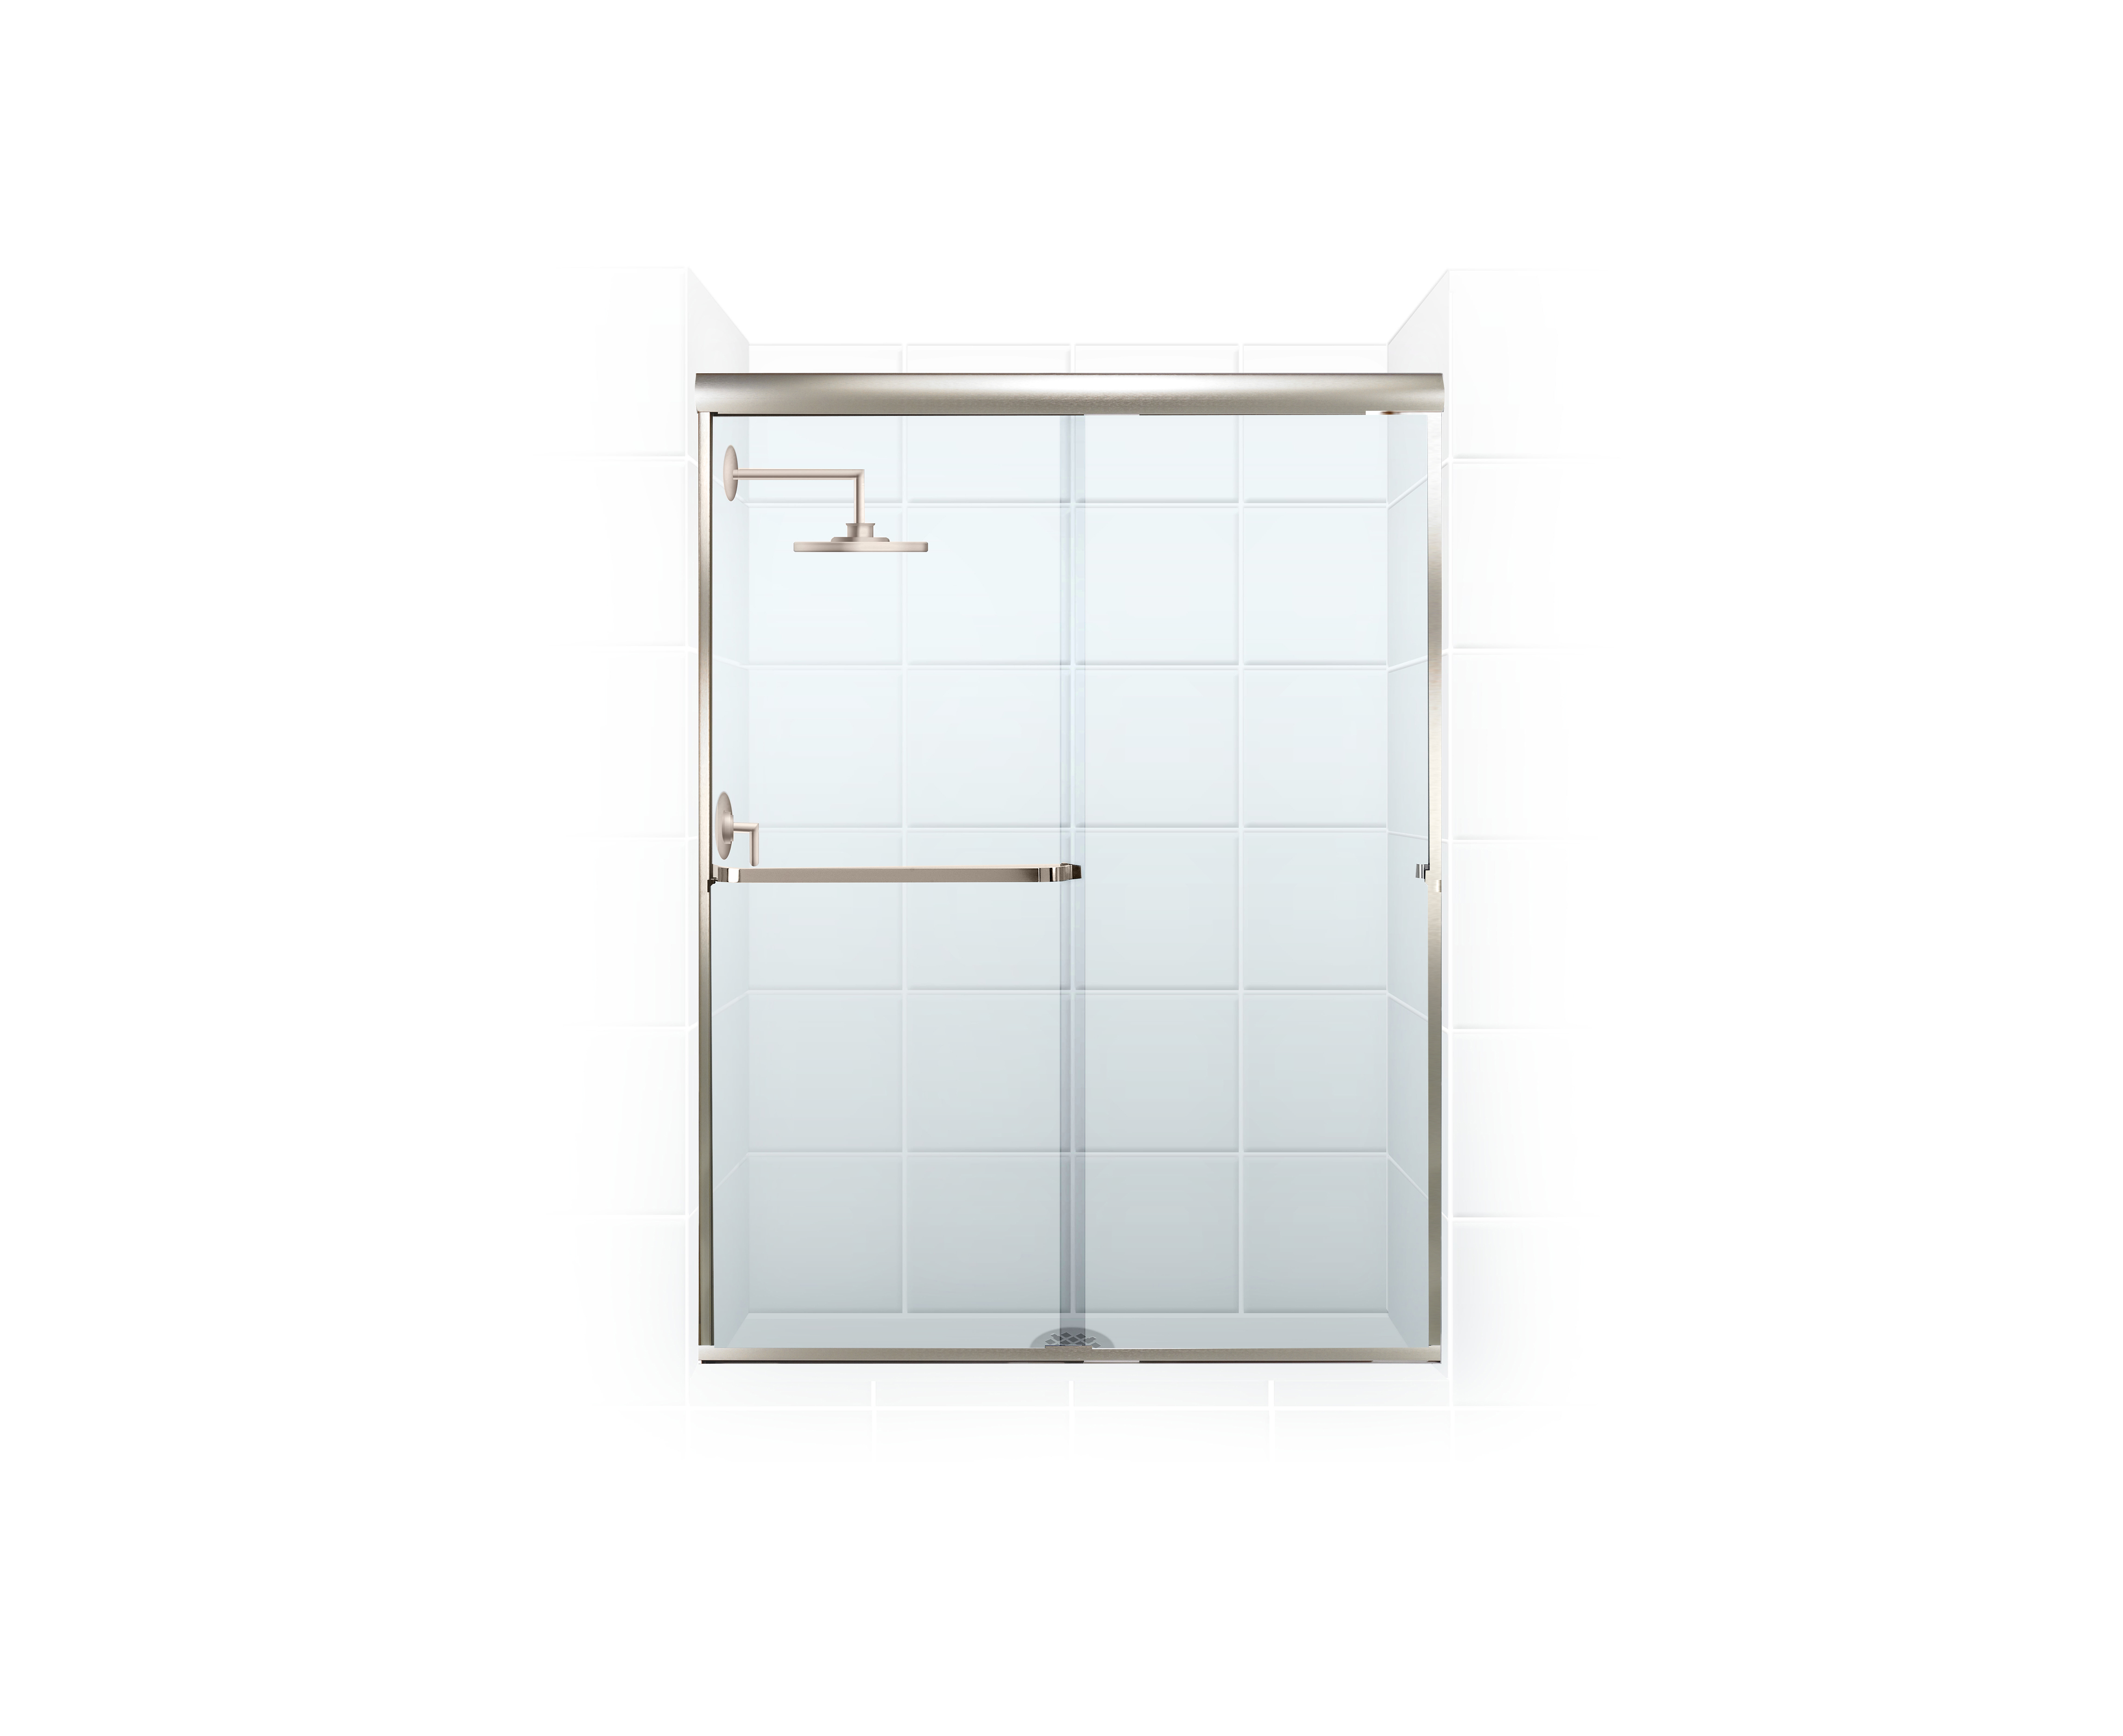 coastal industries paragon 316-b-series shower door